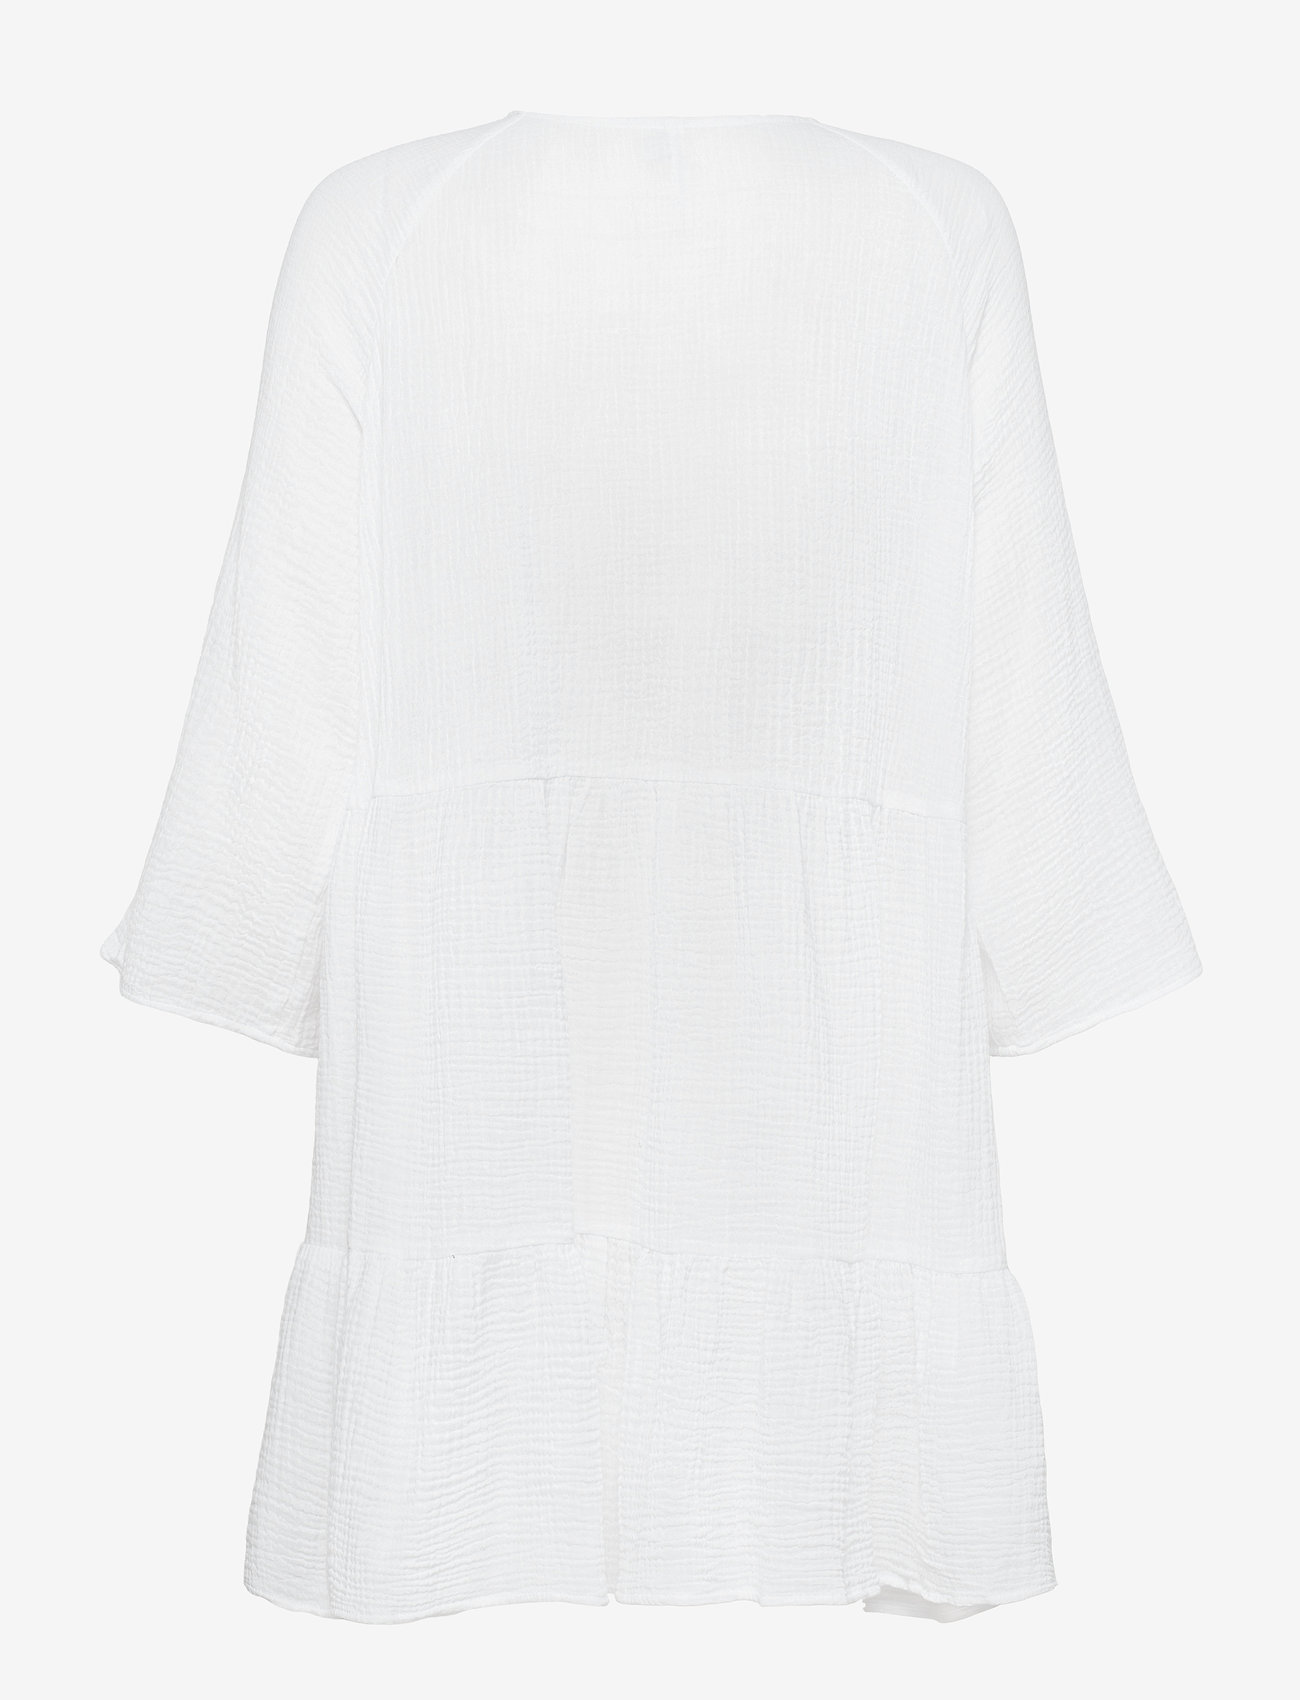 Beach Edit Double Cloth Cover Up (White) (52 €) - Seafolly 20mP4